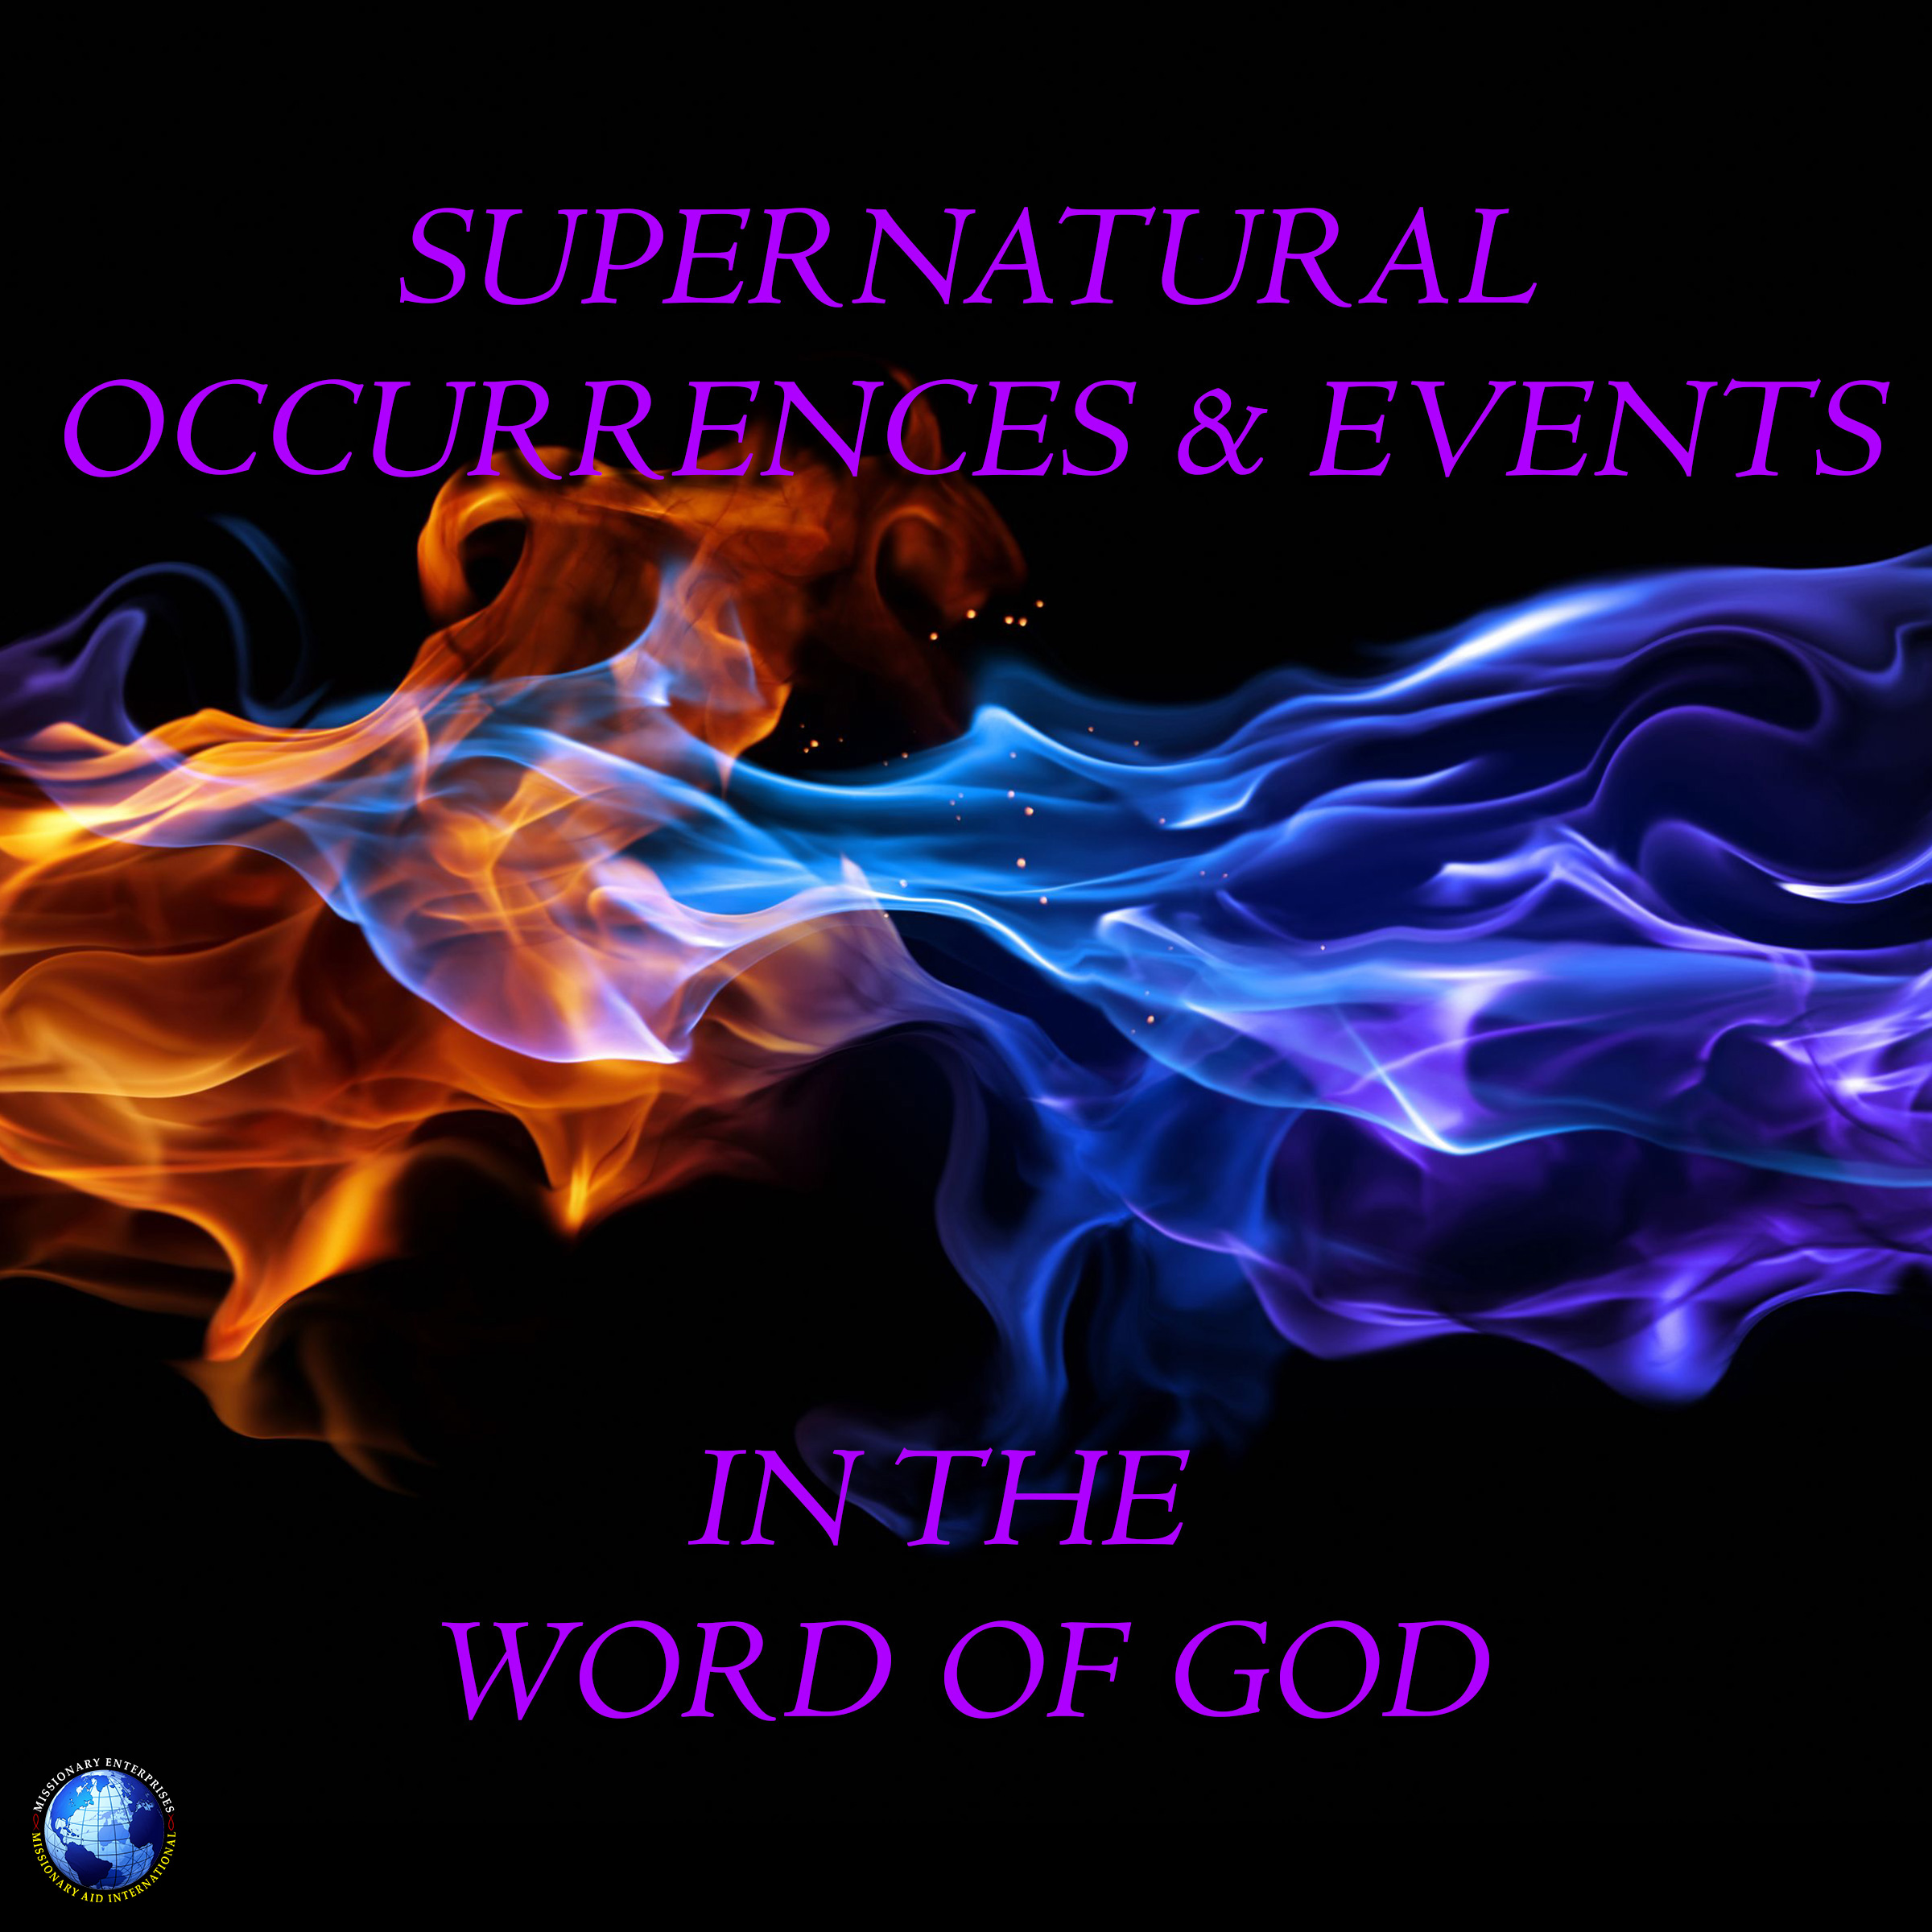 Supernatural Occurrences & Events in The Word of God